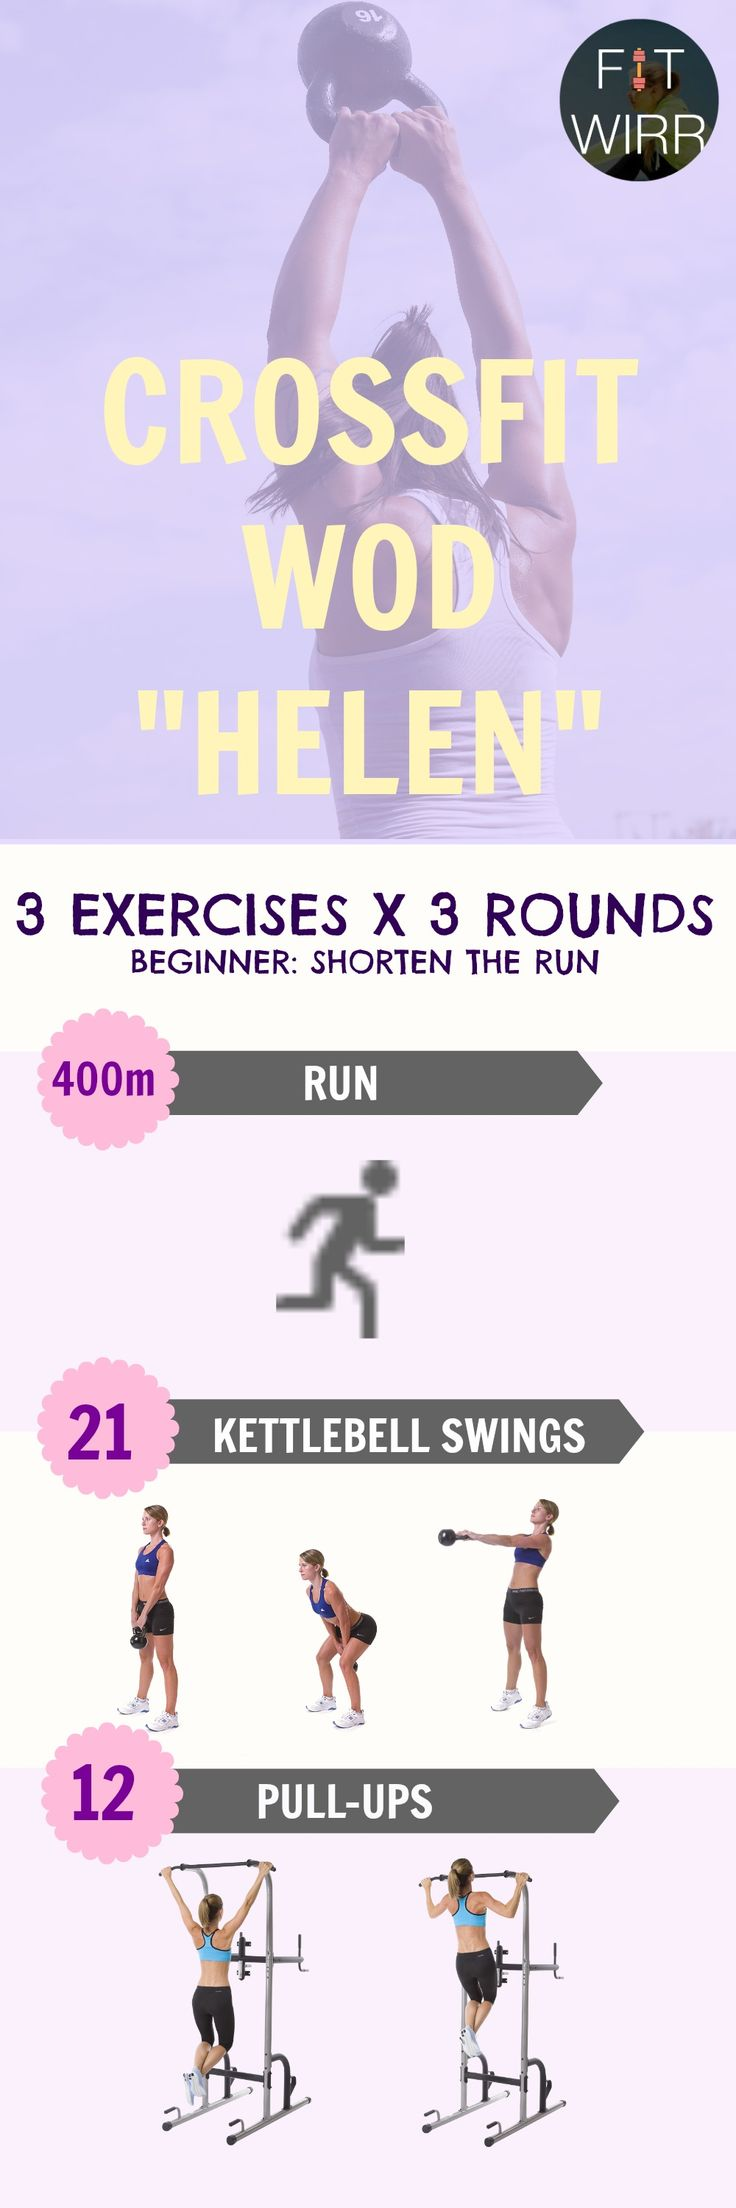 CrossFit WOD Helen. Burn calories and torch fat with this full body, high intensity workout. It combines cardio and resistance training for maximum muscle building and calorie burning effects. - www.fitwirr.com